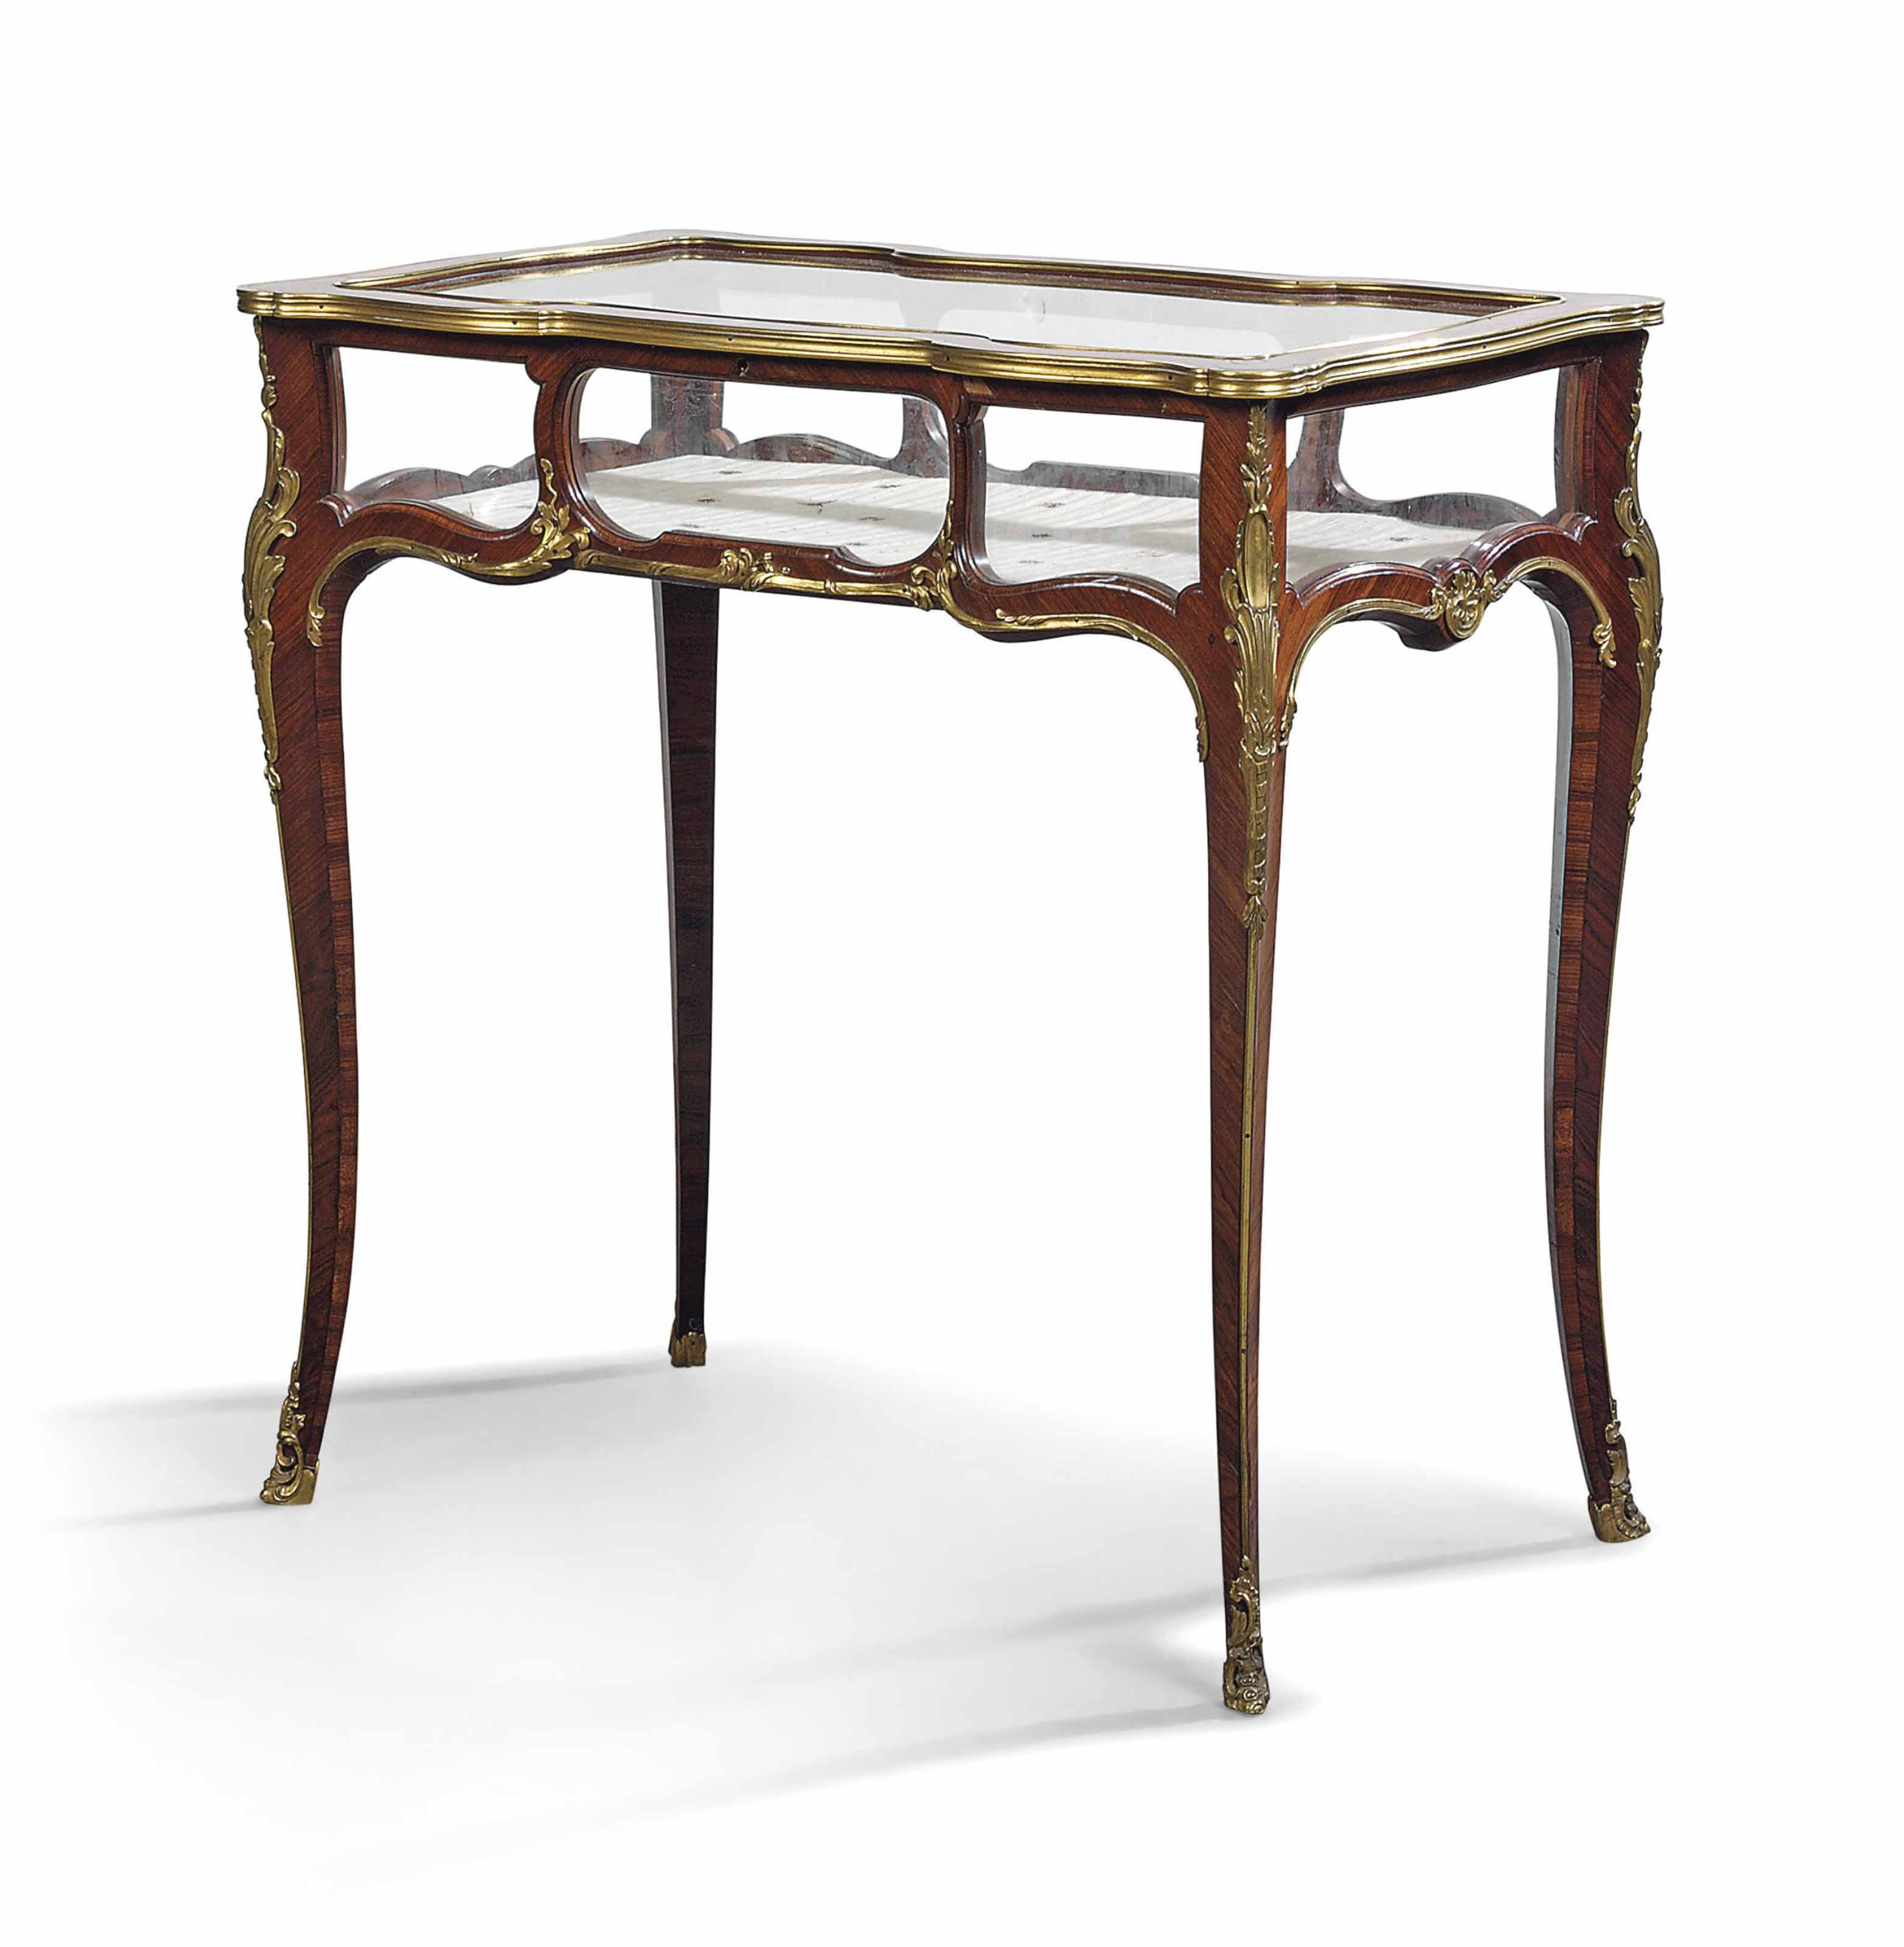 A FRENCH ORMOLU-MOUNTED KINGWOOD VITRINE-TABLE